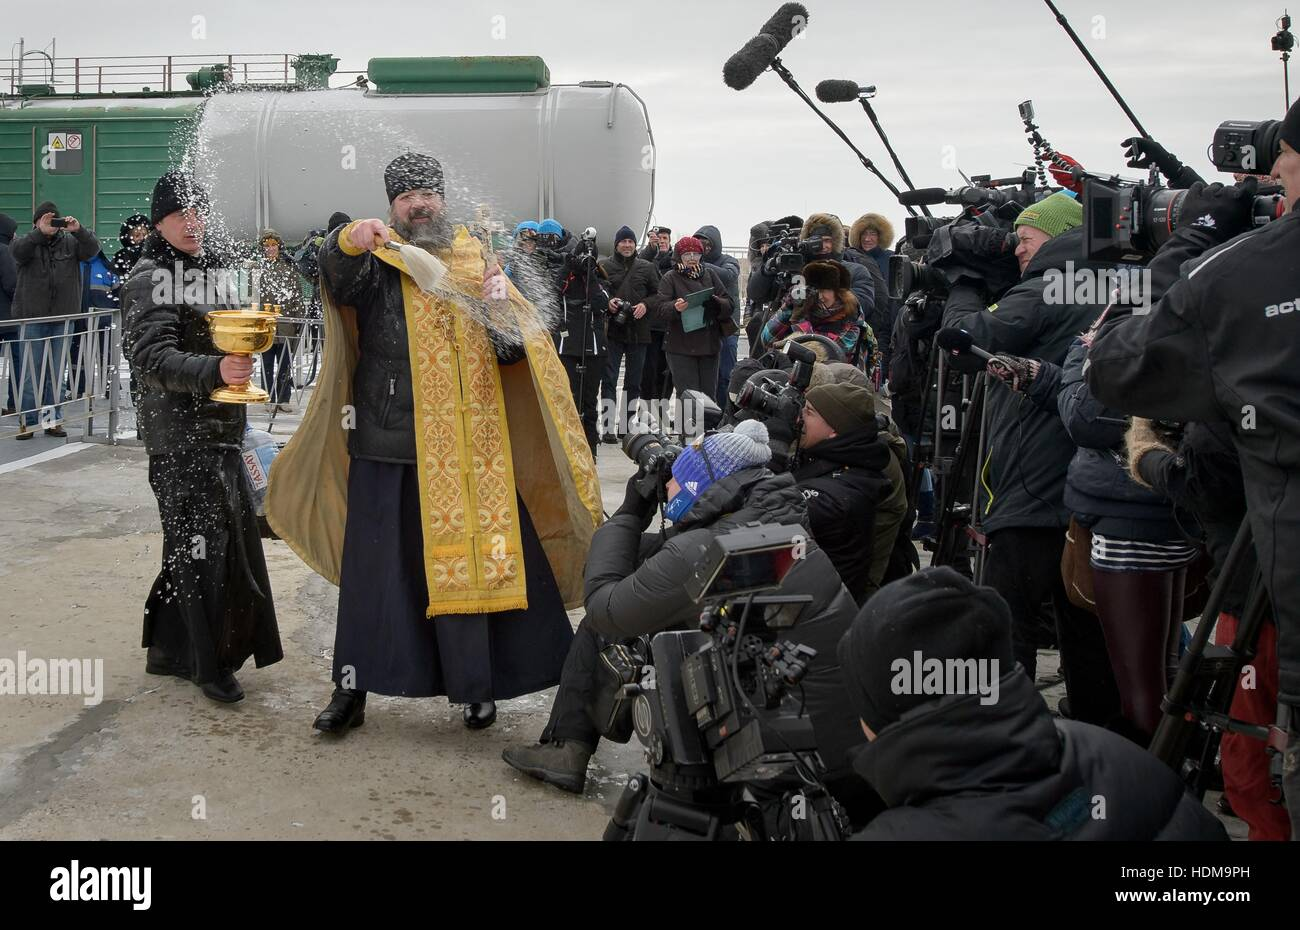 A Russian Orthodox Priest blesses members of the media after blessing the Soyuz MS-03 spacecraft rocket in preparation - Stock Image